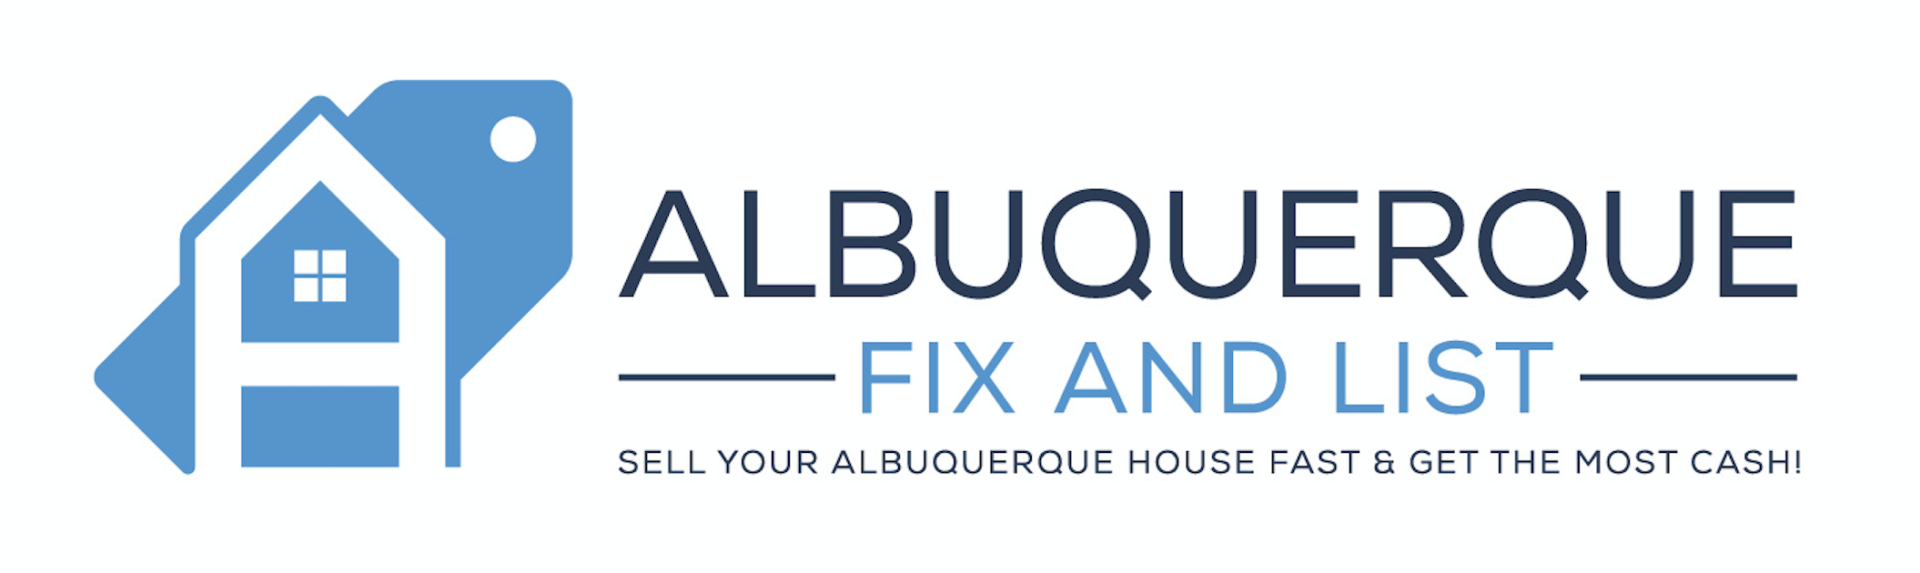 Albuquerque Fix And List logo